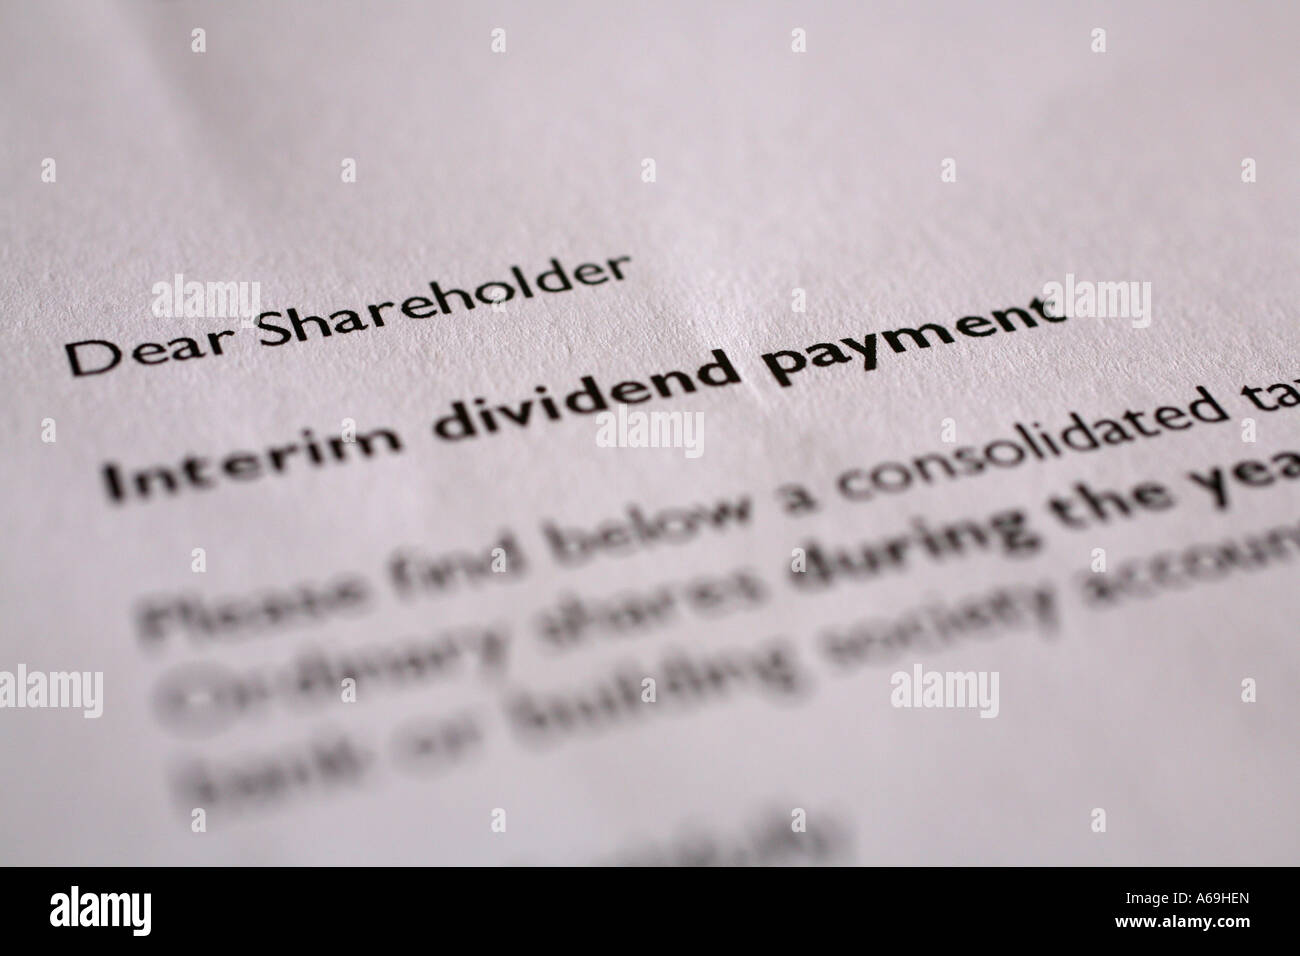 Letter from chief executive to Bradford and Bingley shareholders, 2007 - Stock Image